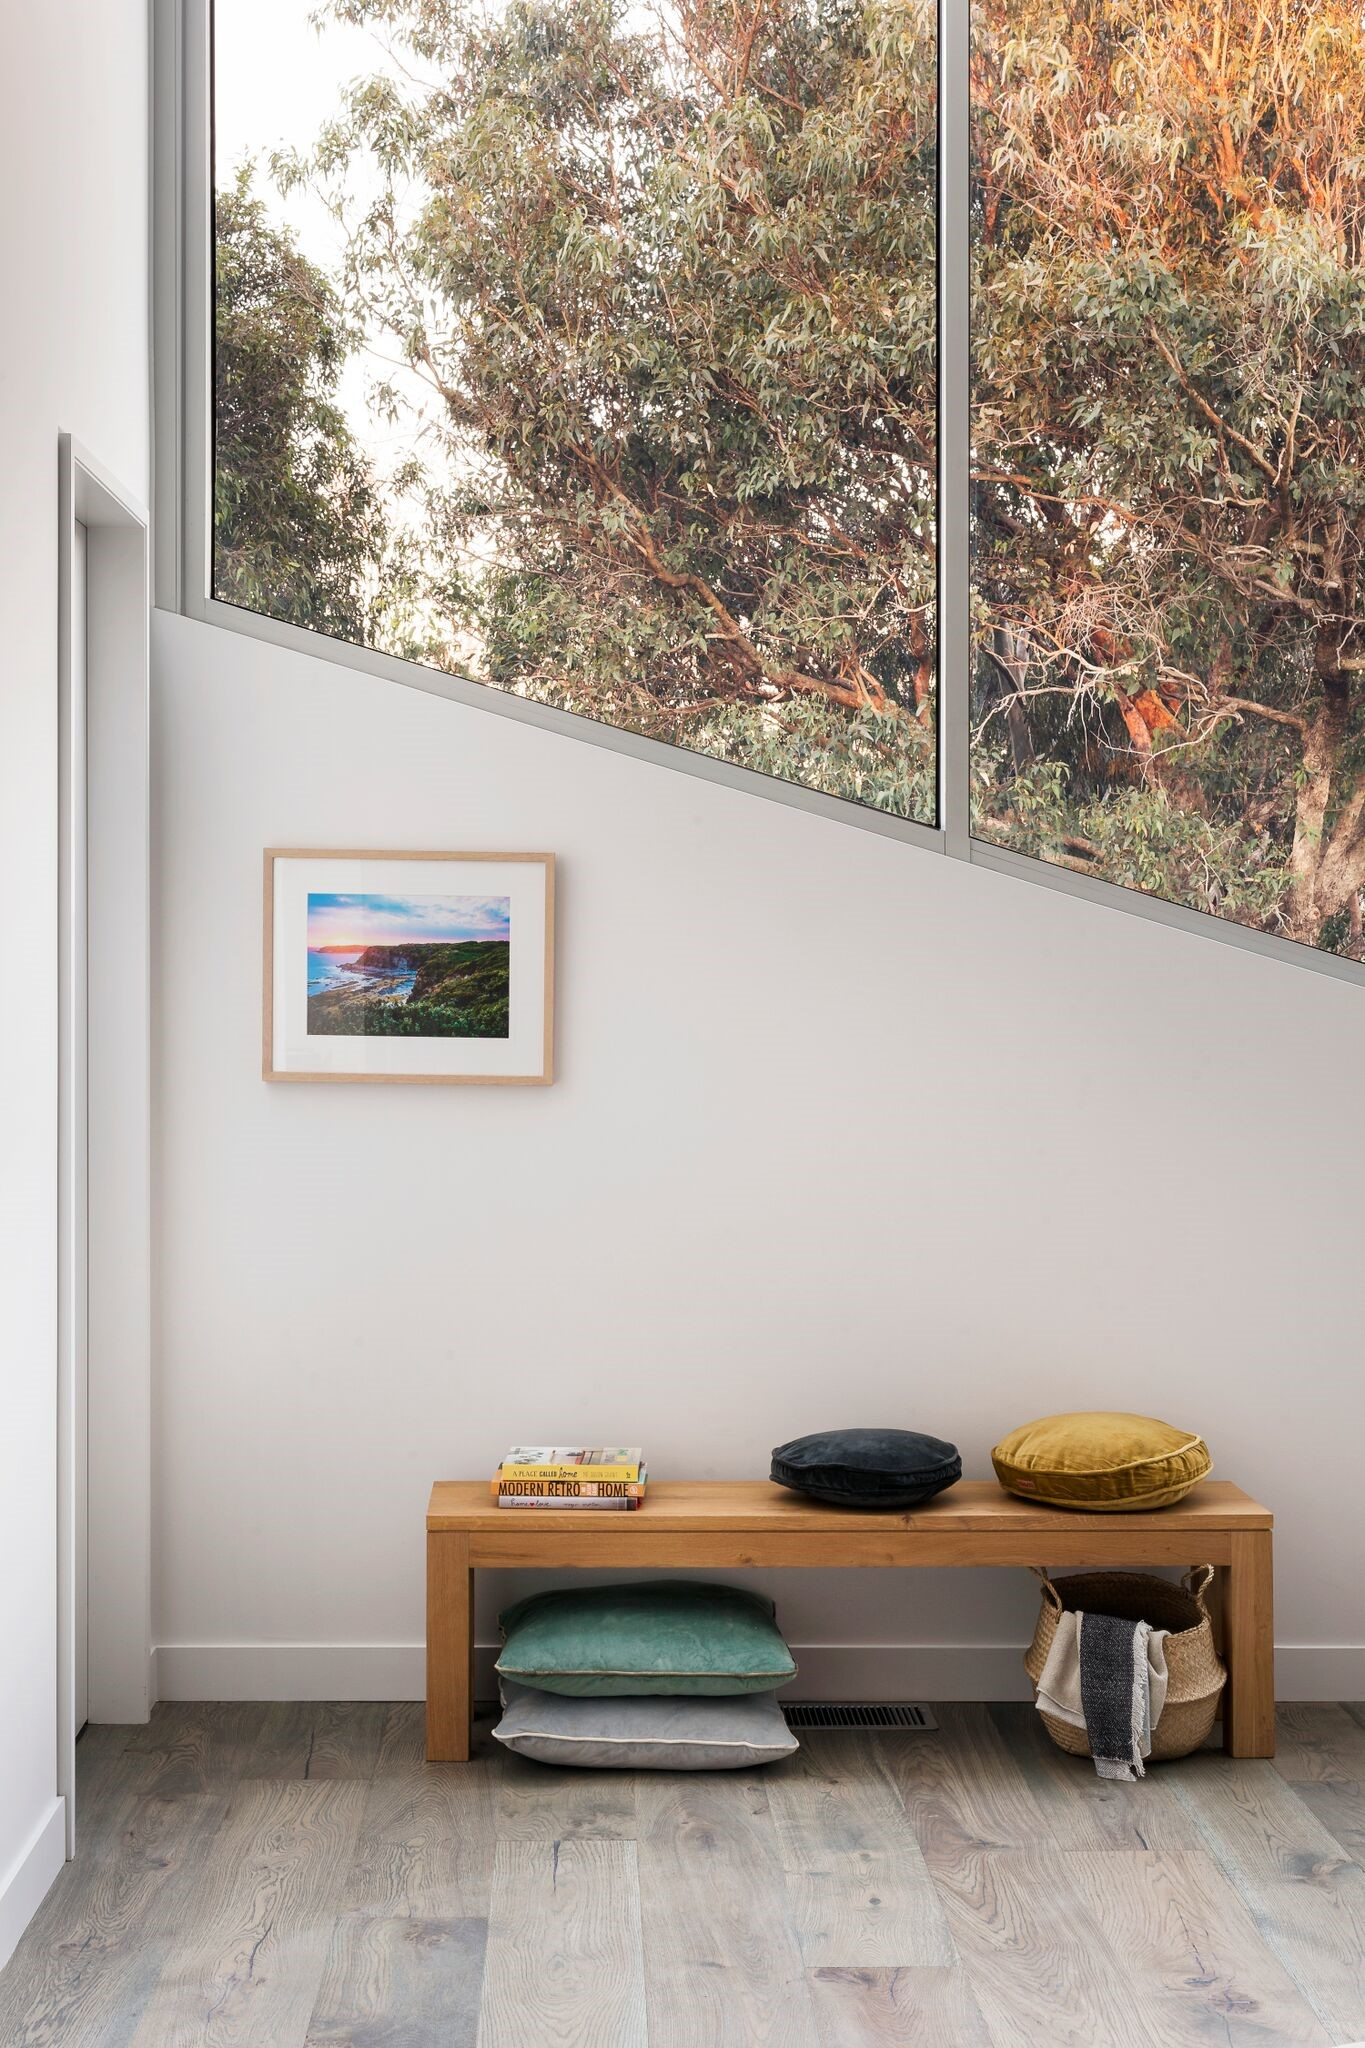 Gallery Of Build Her Collective Local Australian Residential Architecture & Design Melbourne, Vic Image 11